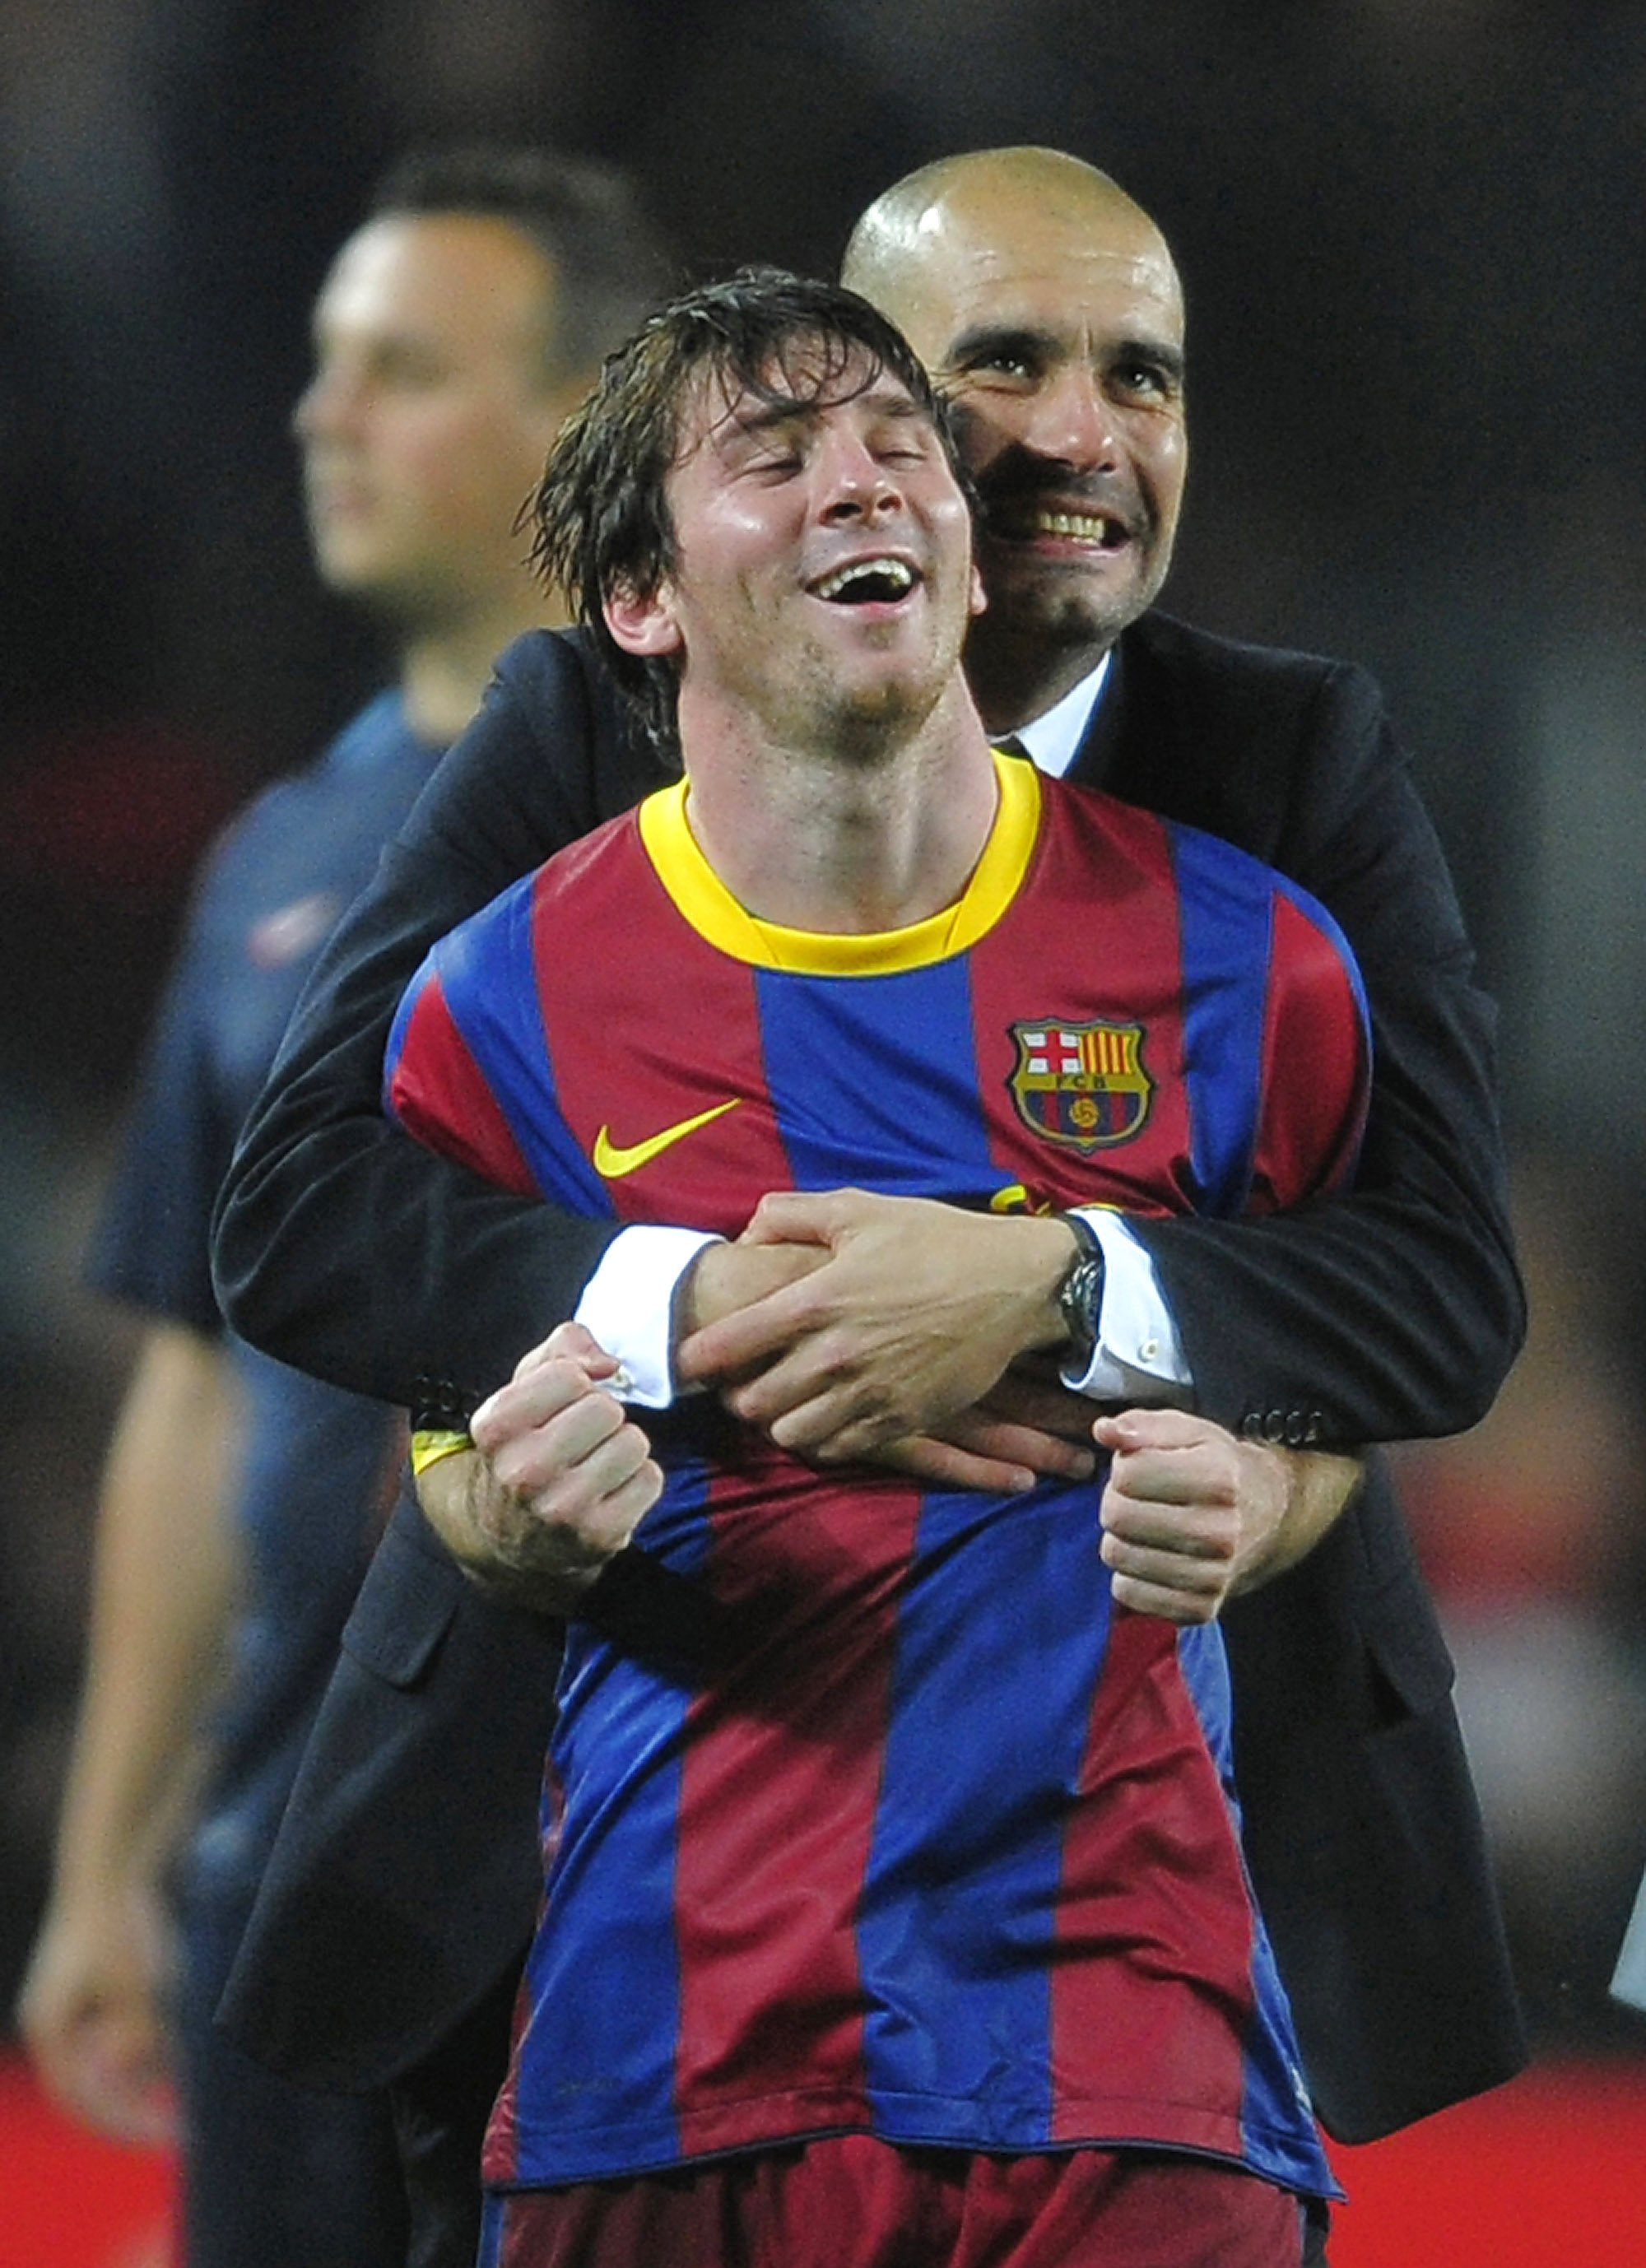 No reunion: Messi should retire in Barcelona, Guardiola says | Daily Sabah